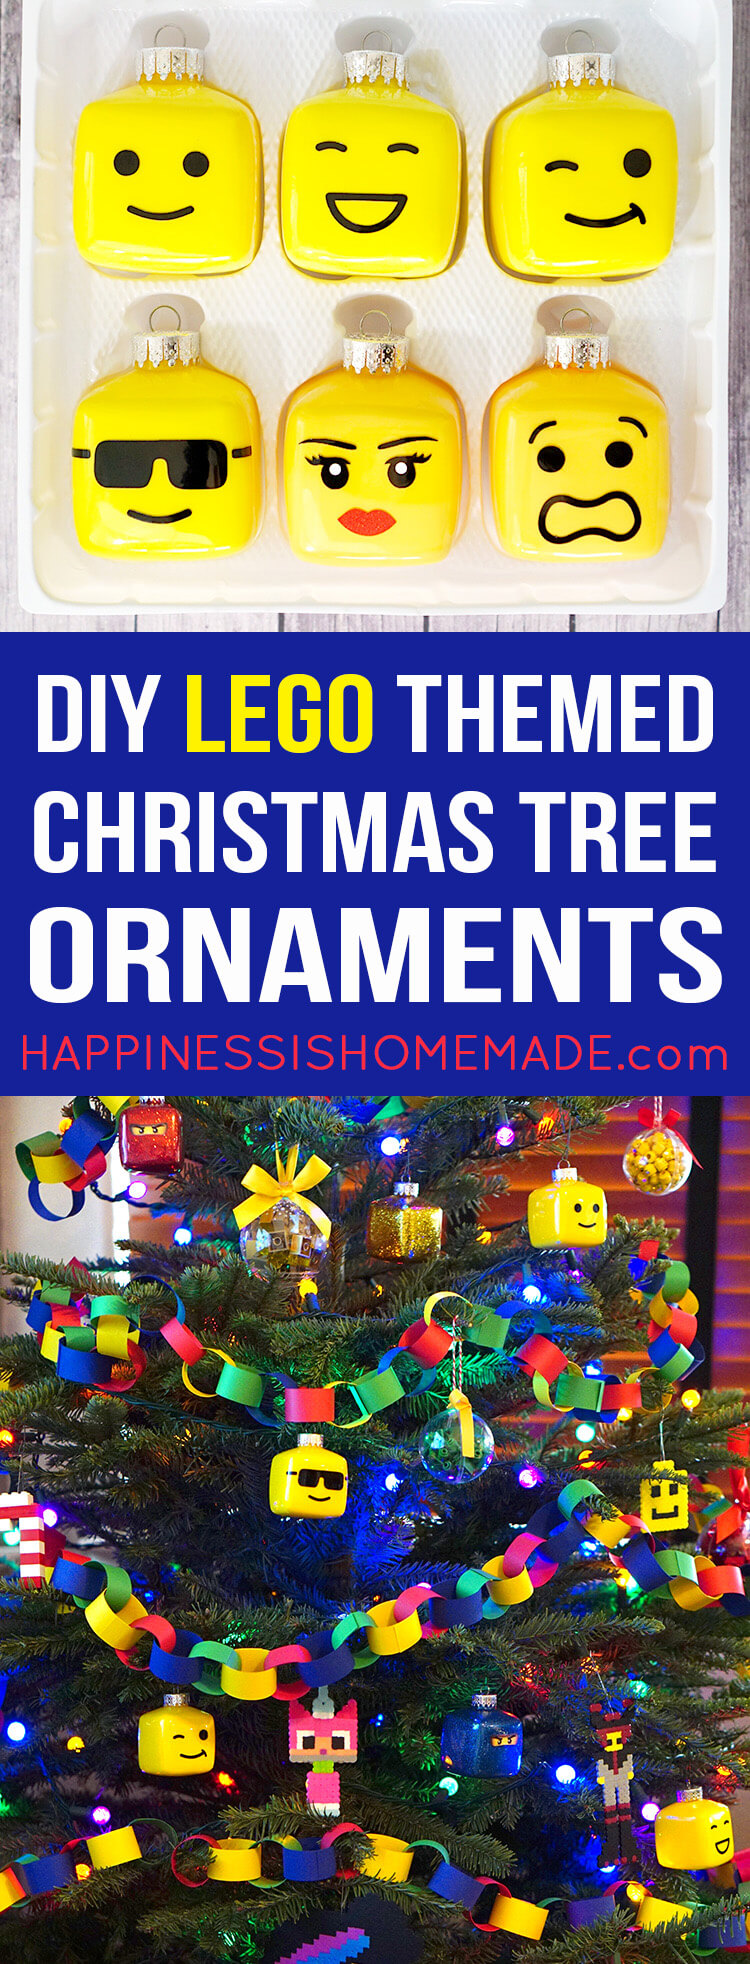 diy-lego-themed-christmas-ornaments-and-tree